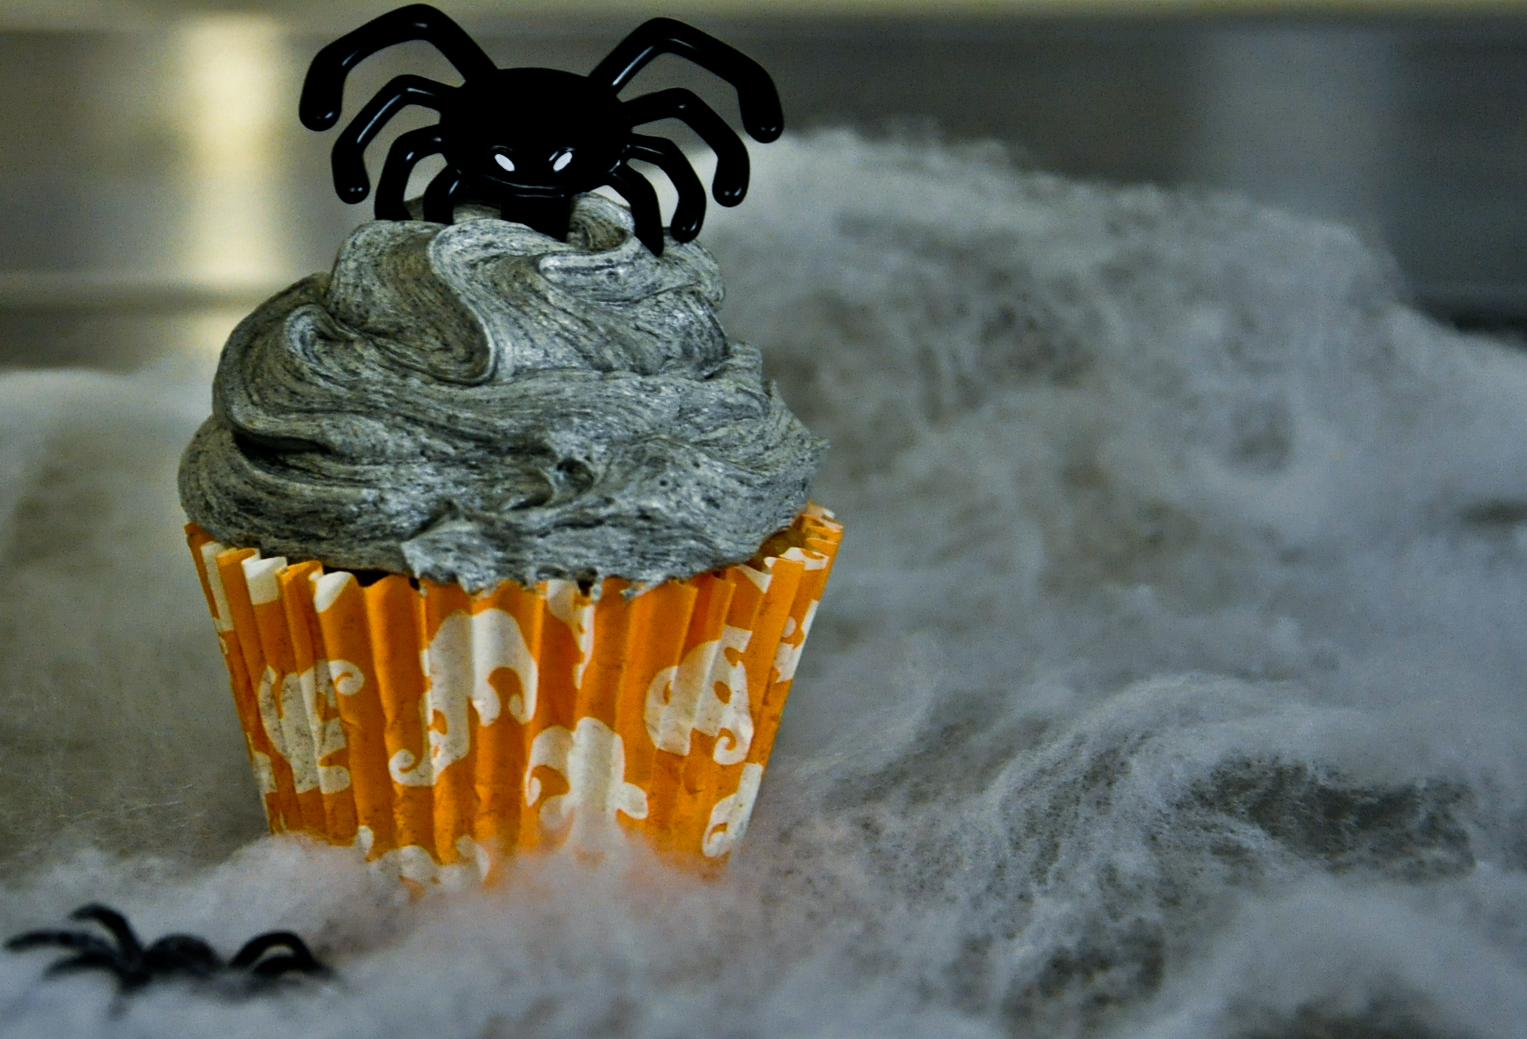 Spooky Cakes VIII by scribbleXcore